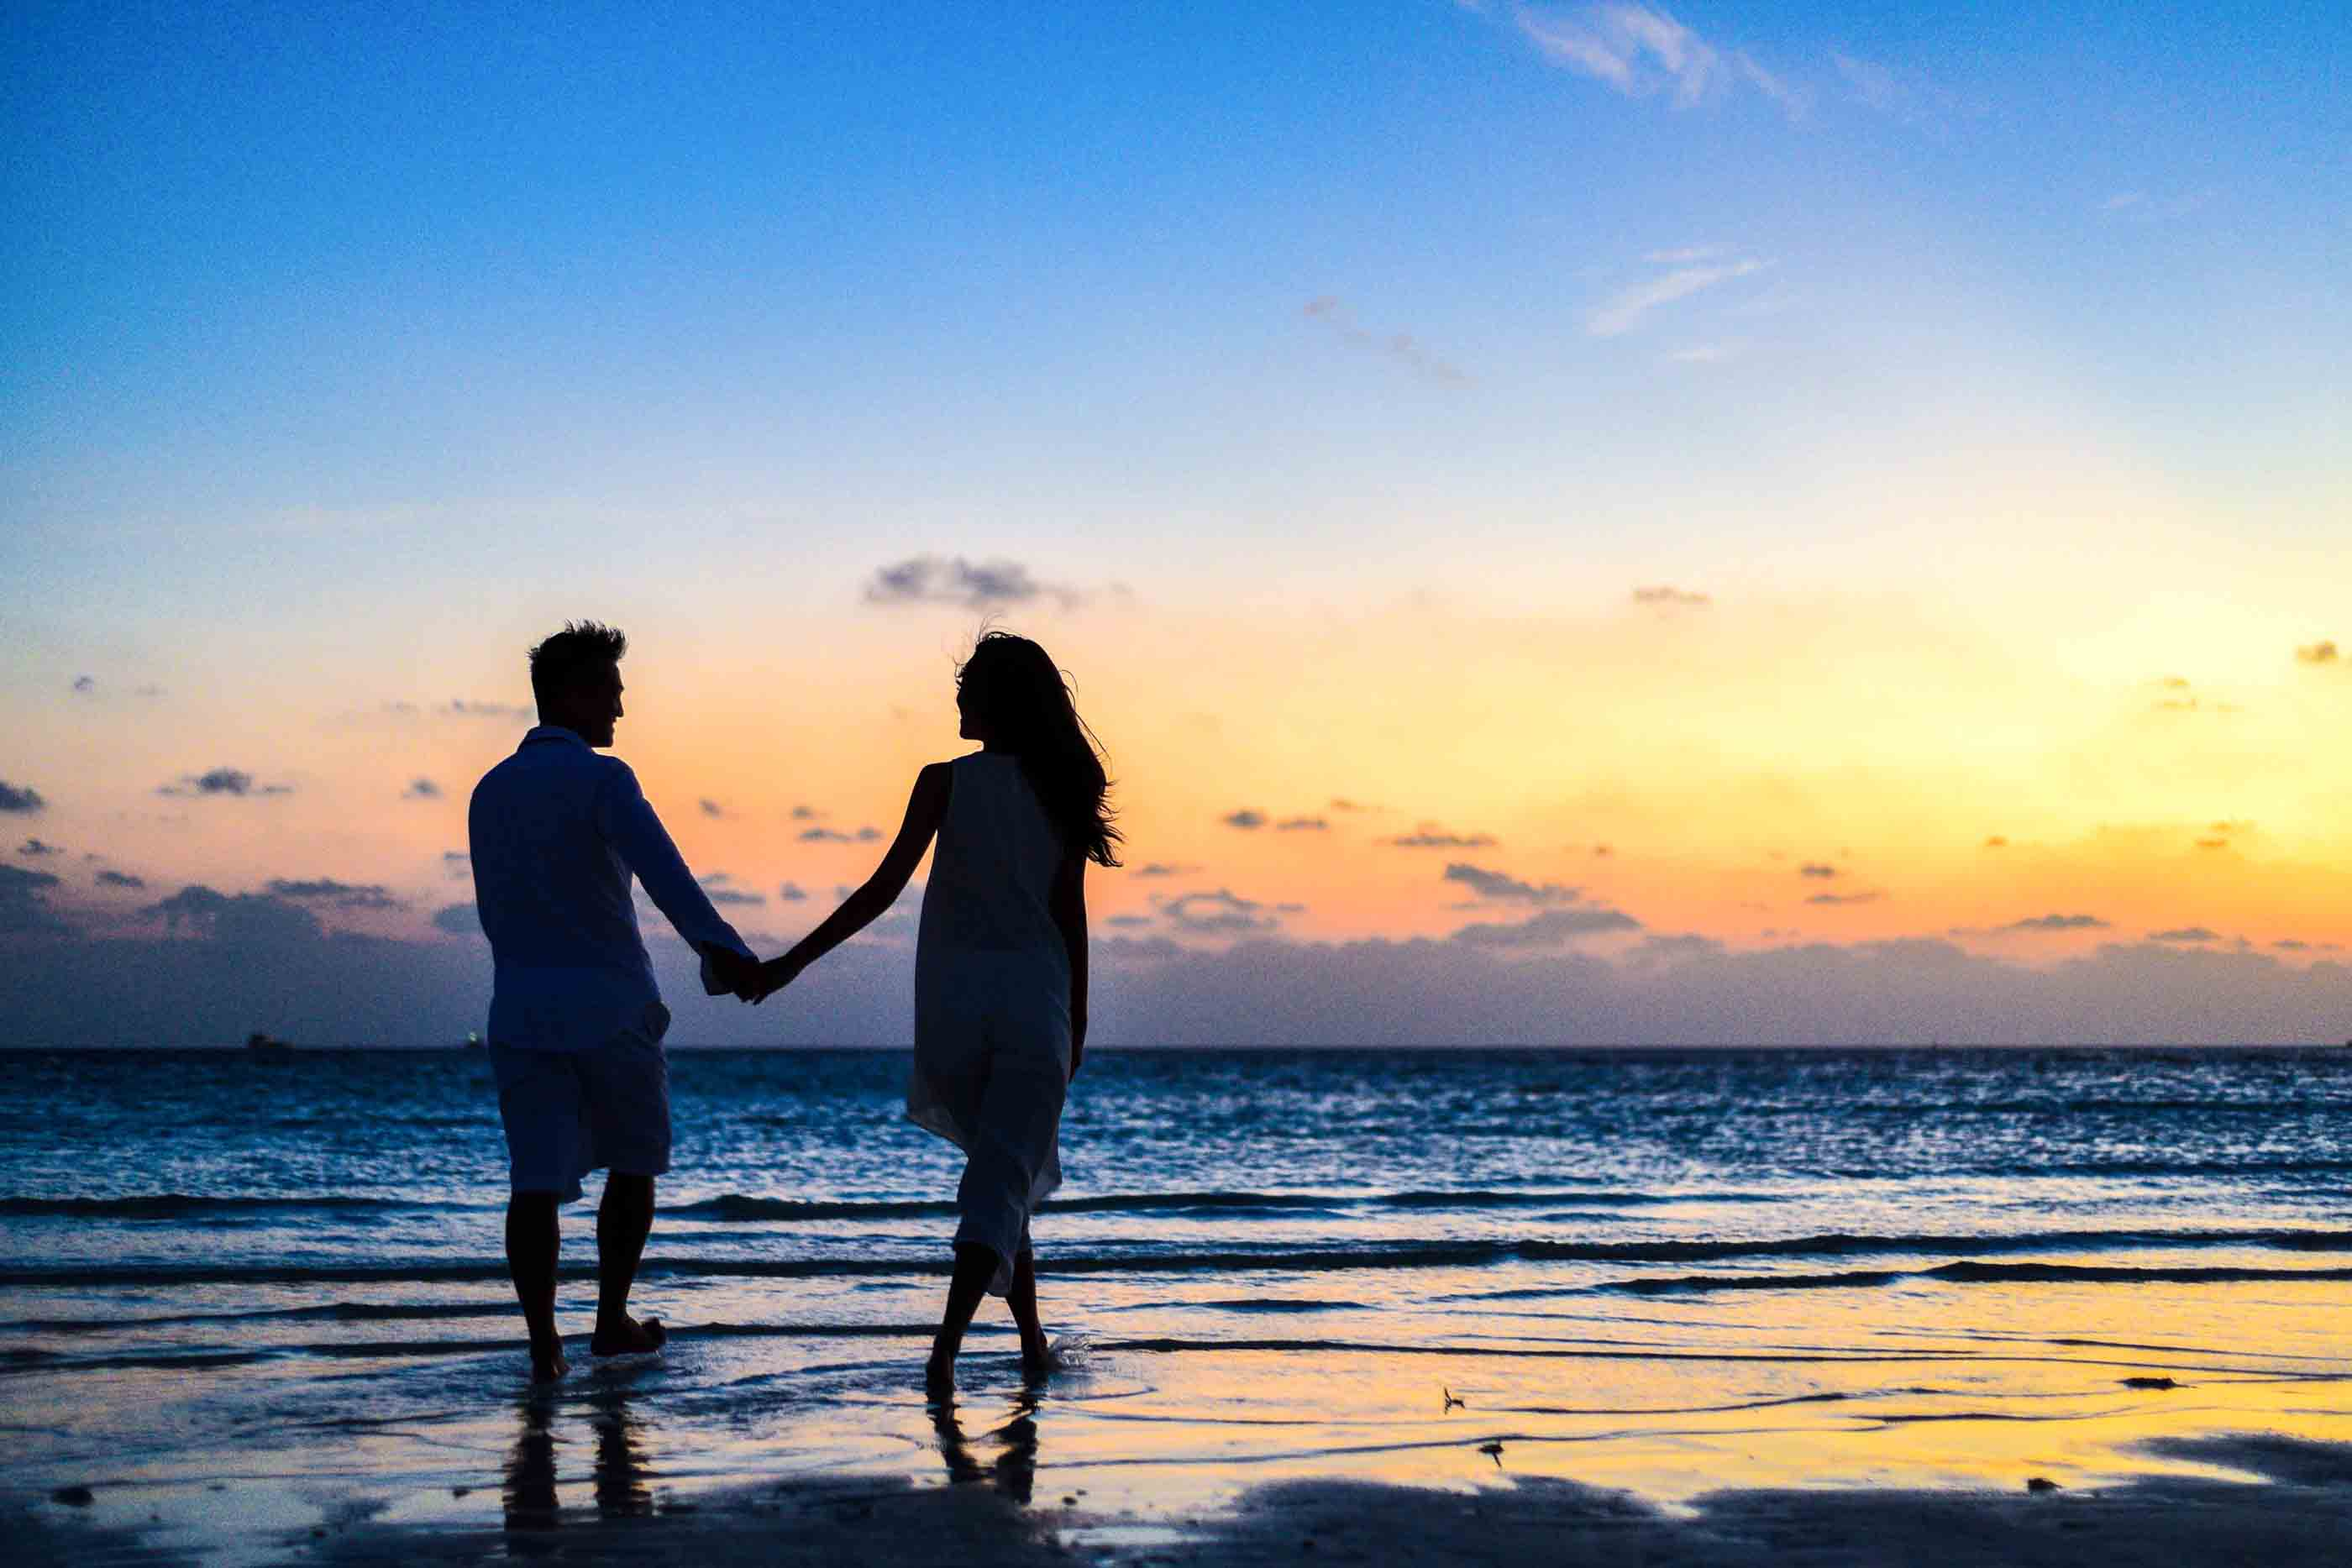 Photos Man And Woman Holding Hands Walking On Seashore During Sunrise